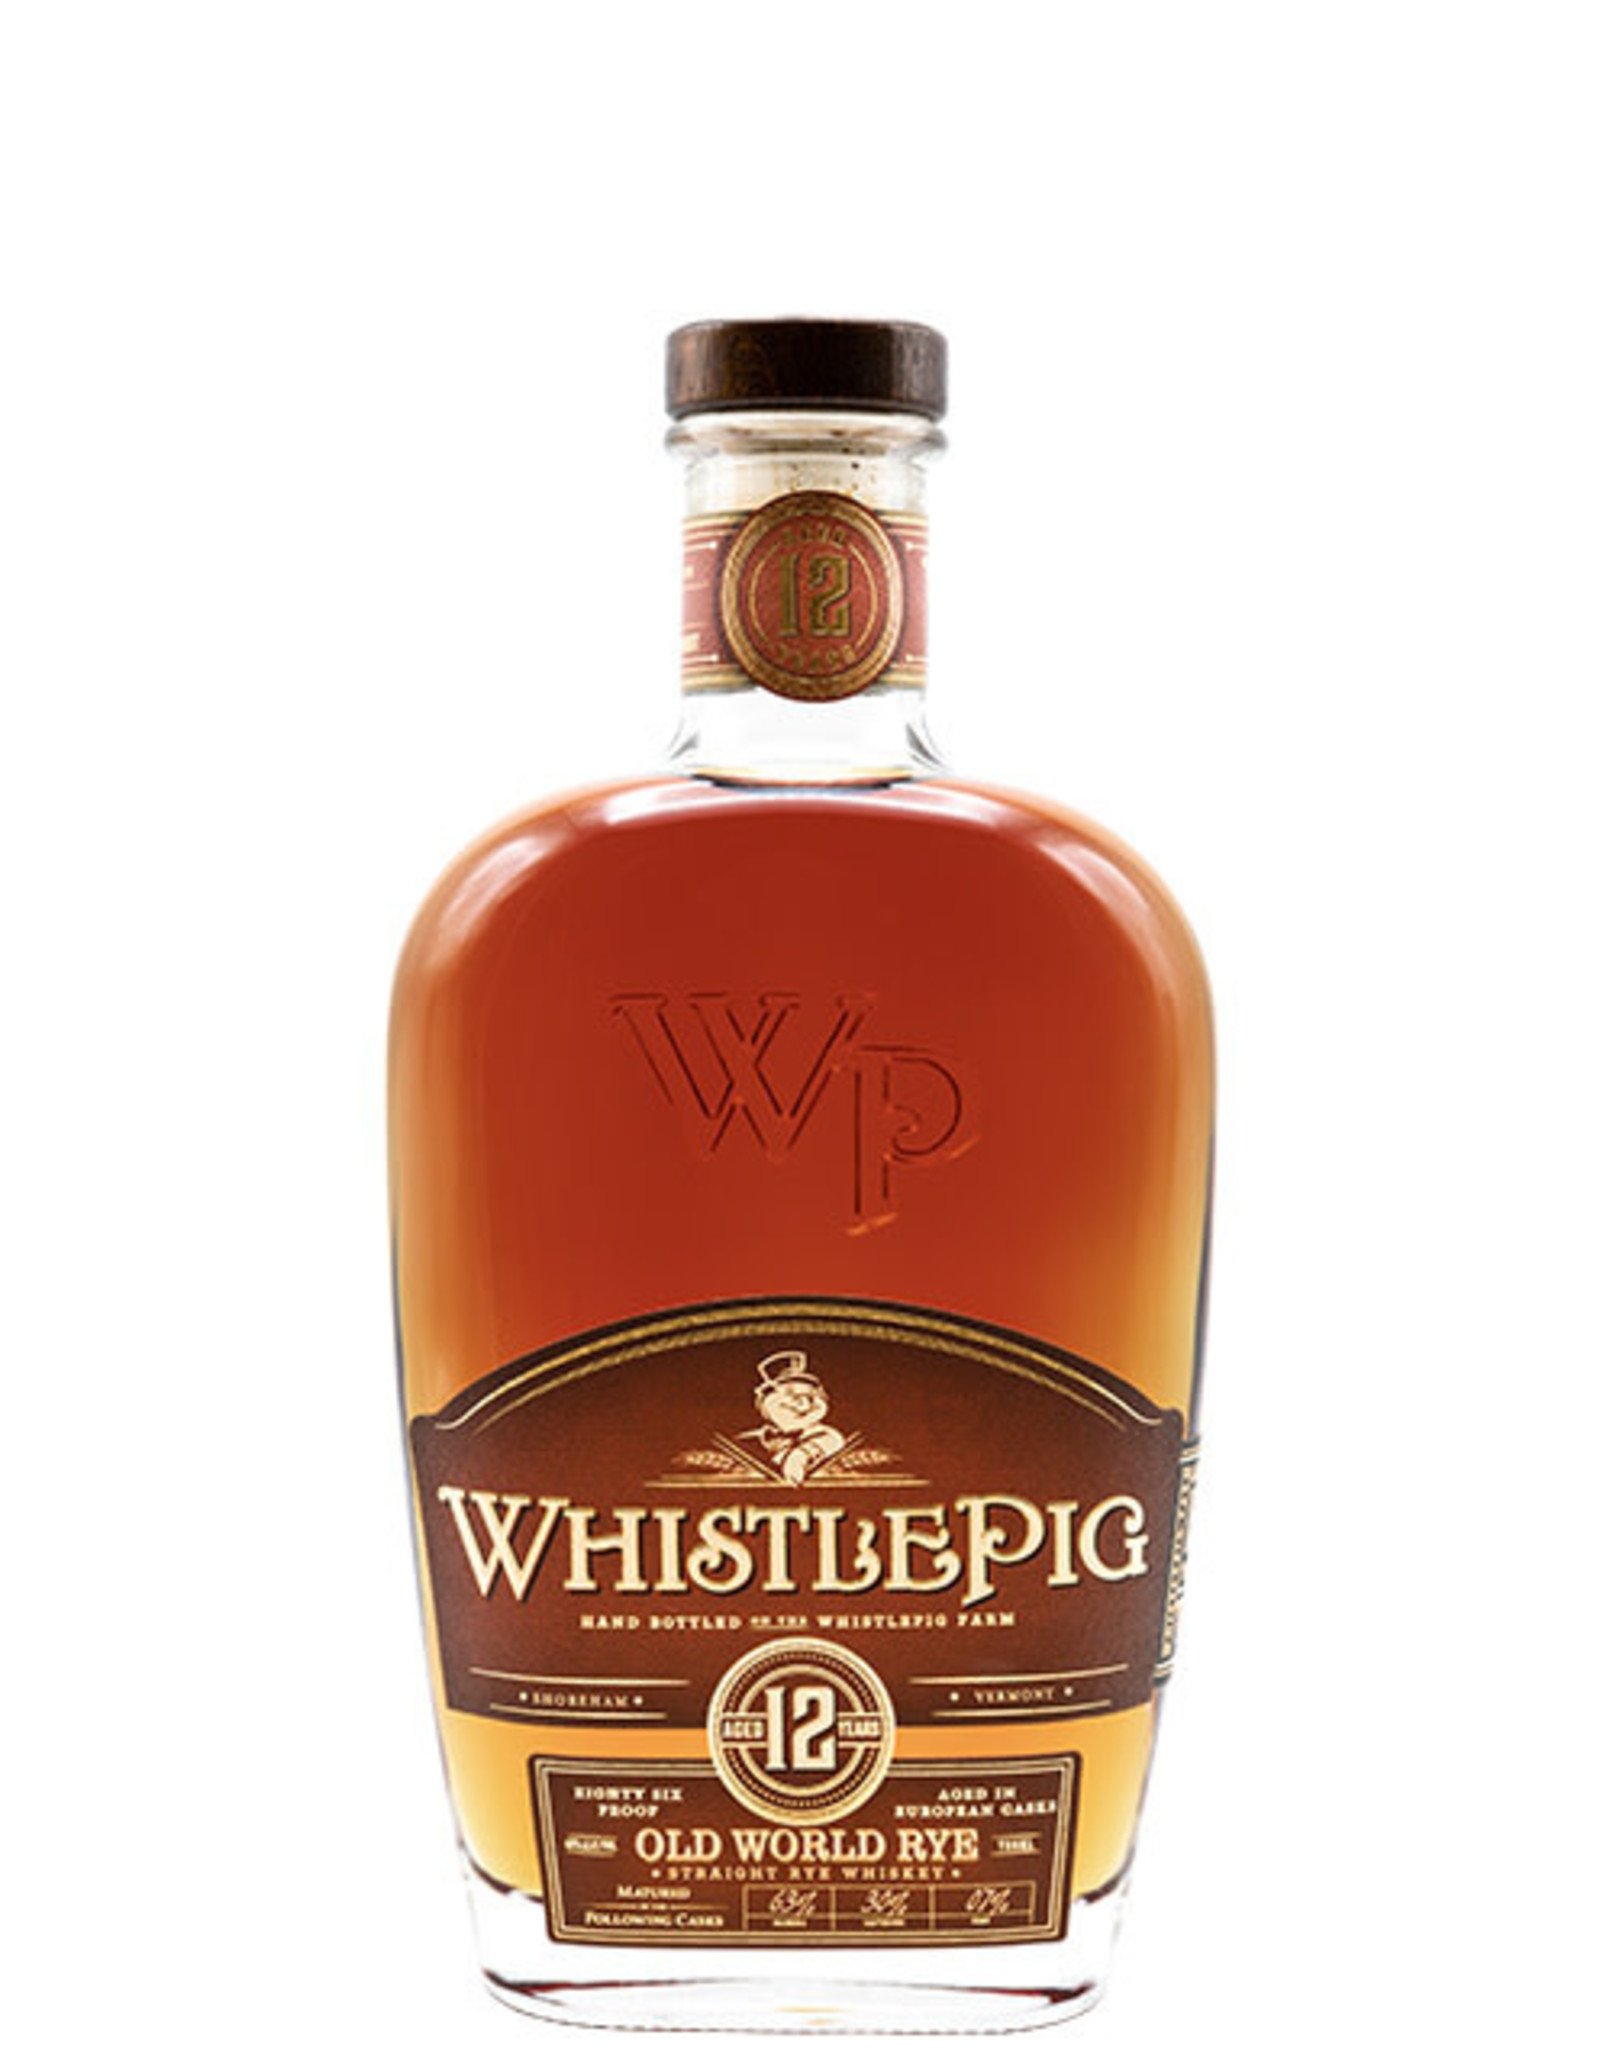 WhistlePig Rye Old World Marriage